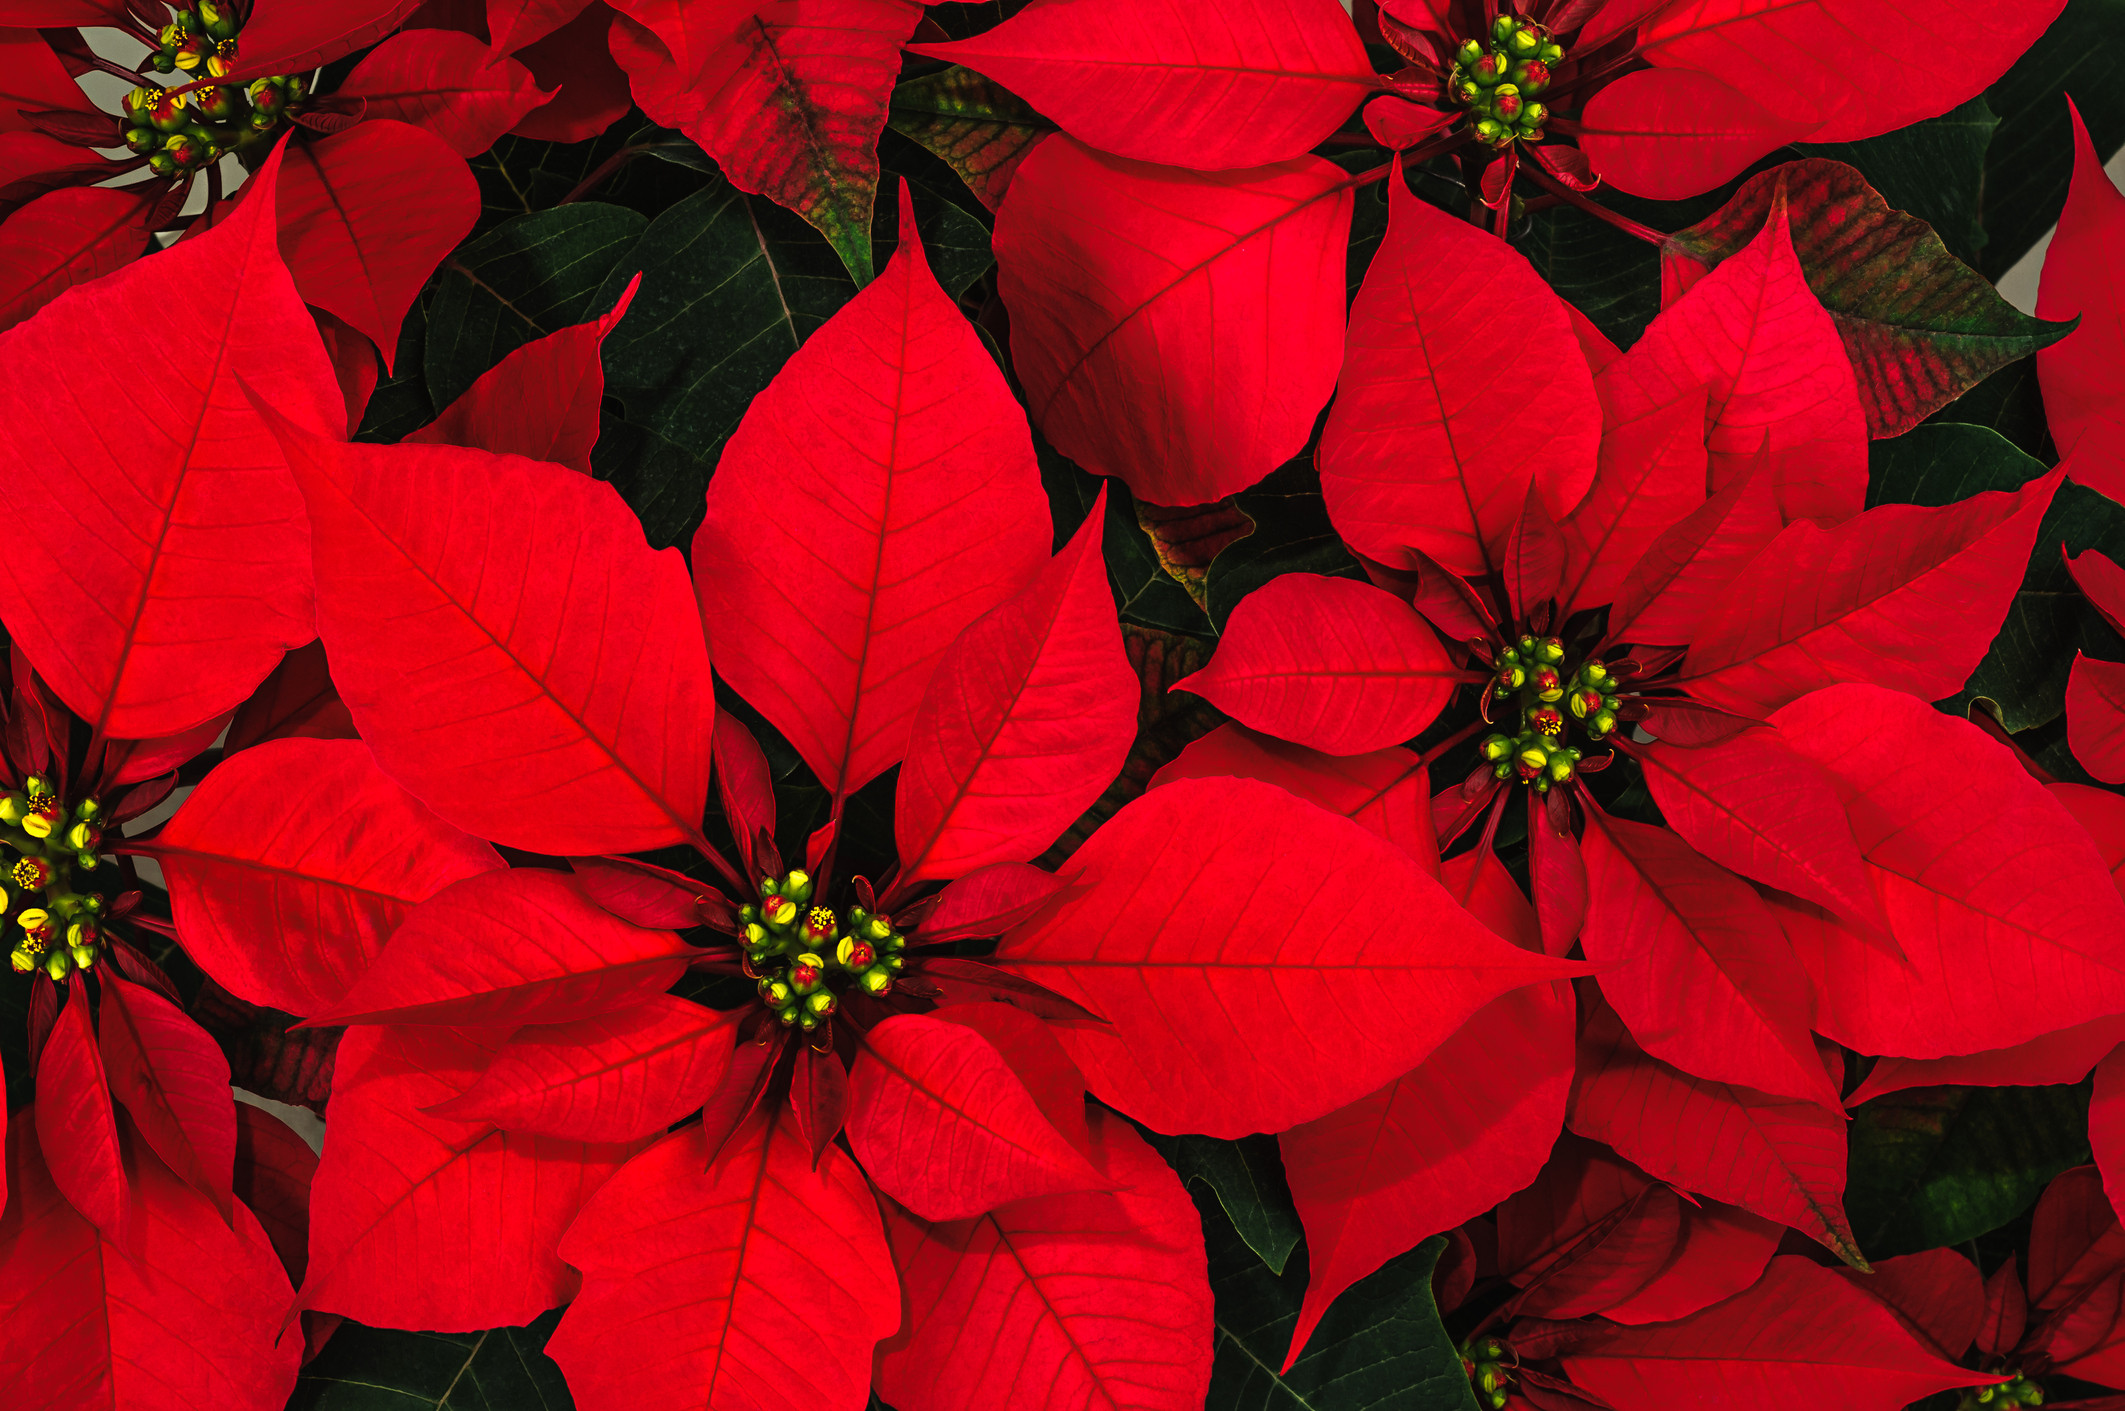 Red Christmas Flower Names  The Origins of the Poinsettia A Long Strange Tale